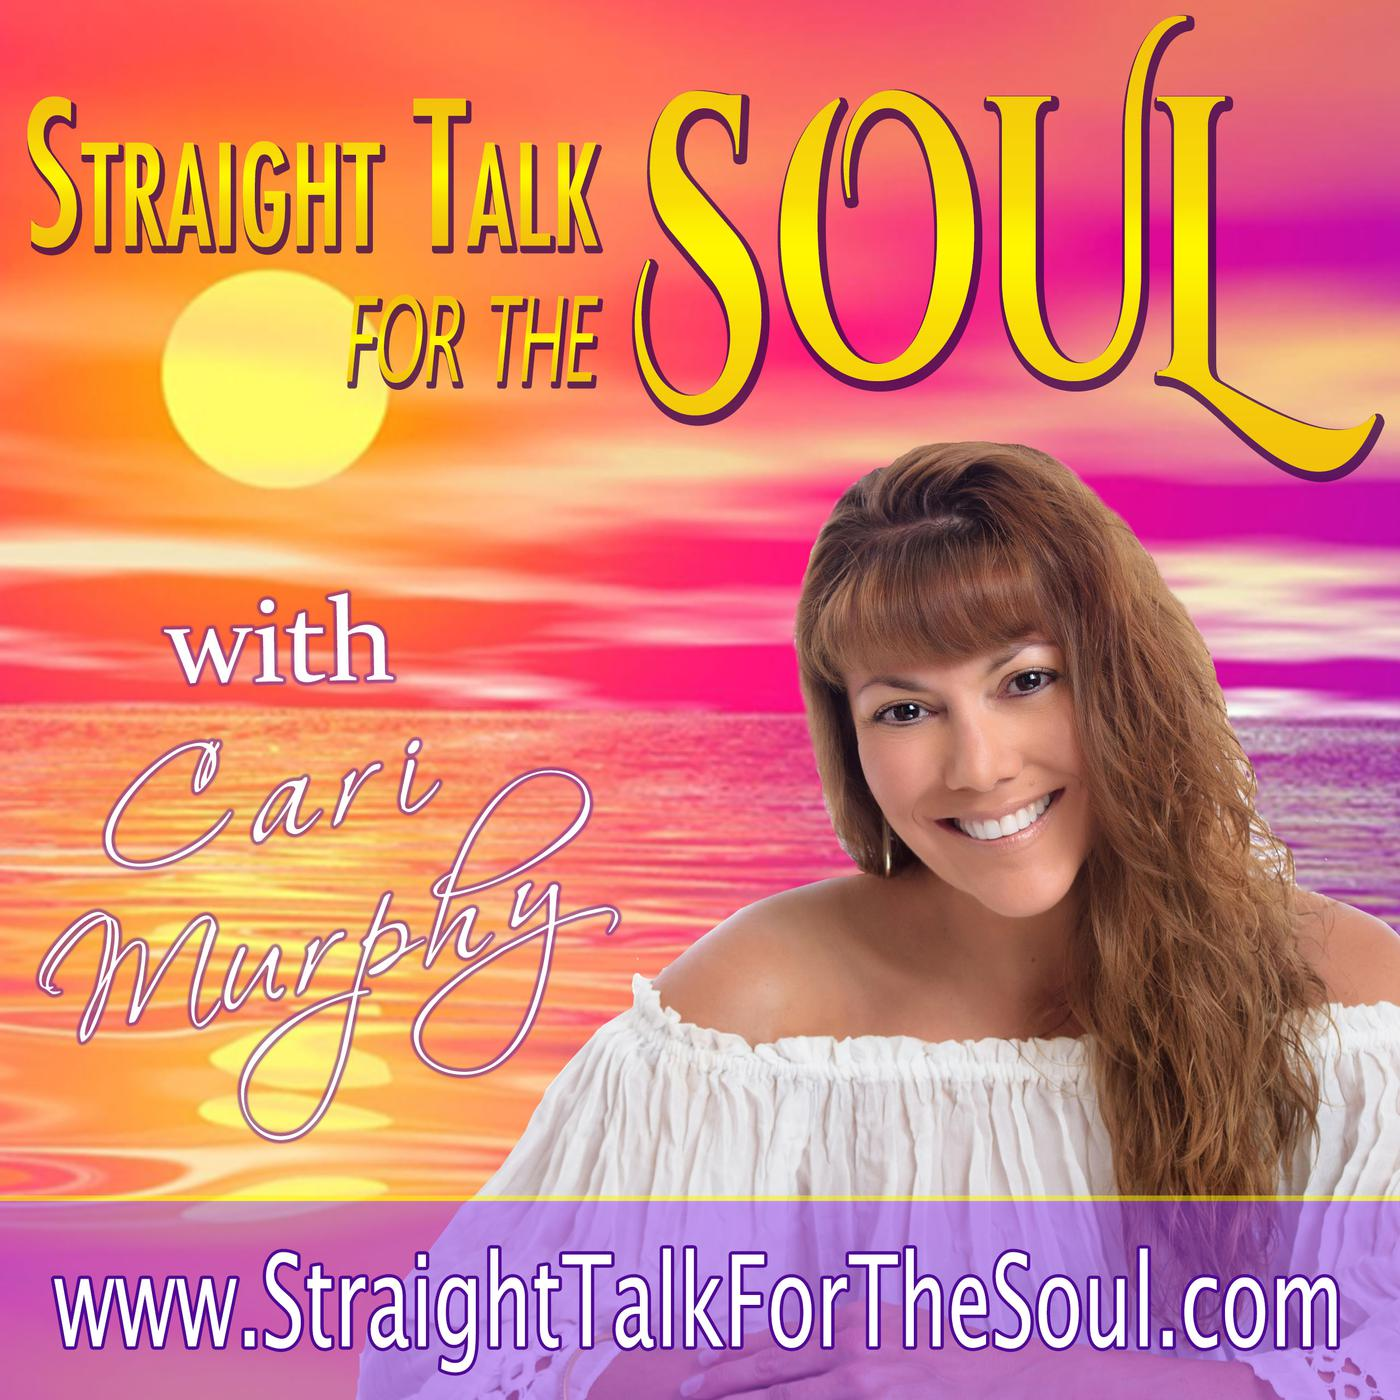 Straight Talk for the SOUL (podcast) - Cari Murphy | Listen